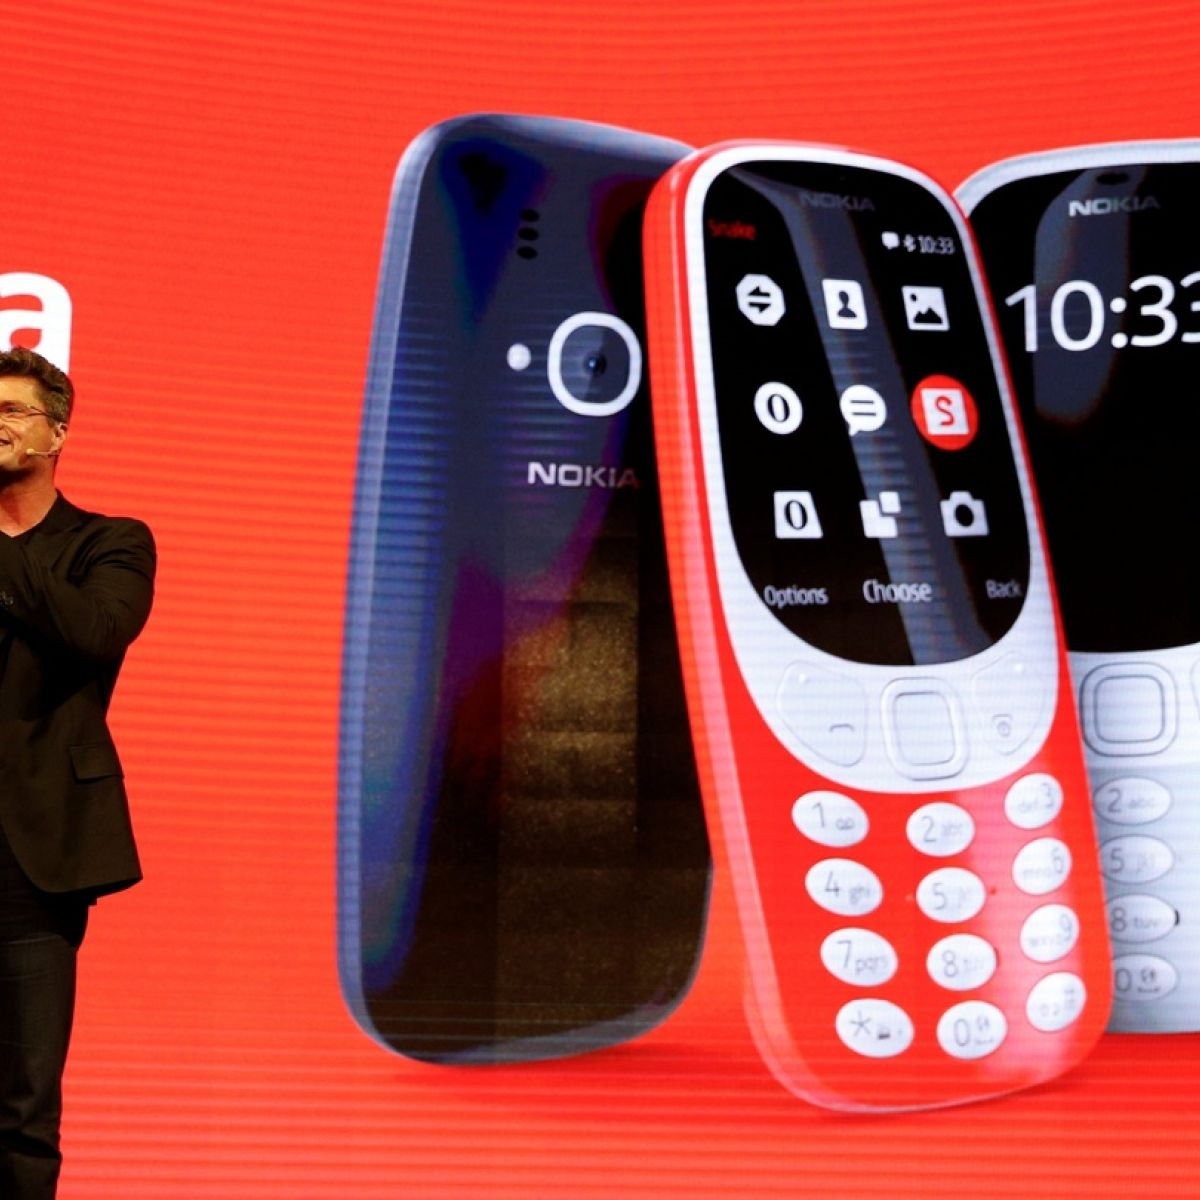 Could the Nokia 3310 be the cure for smartphone addiction?